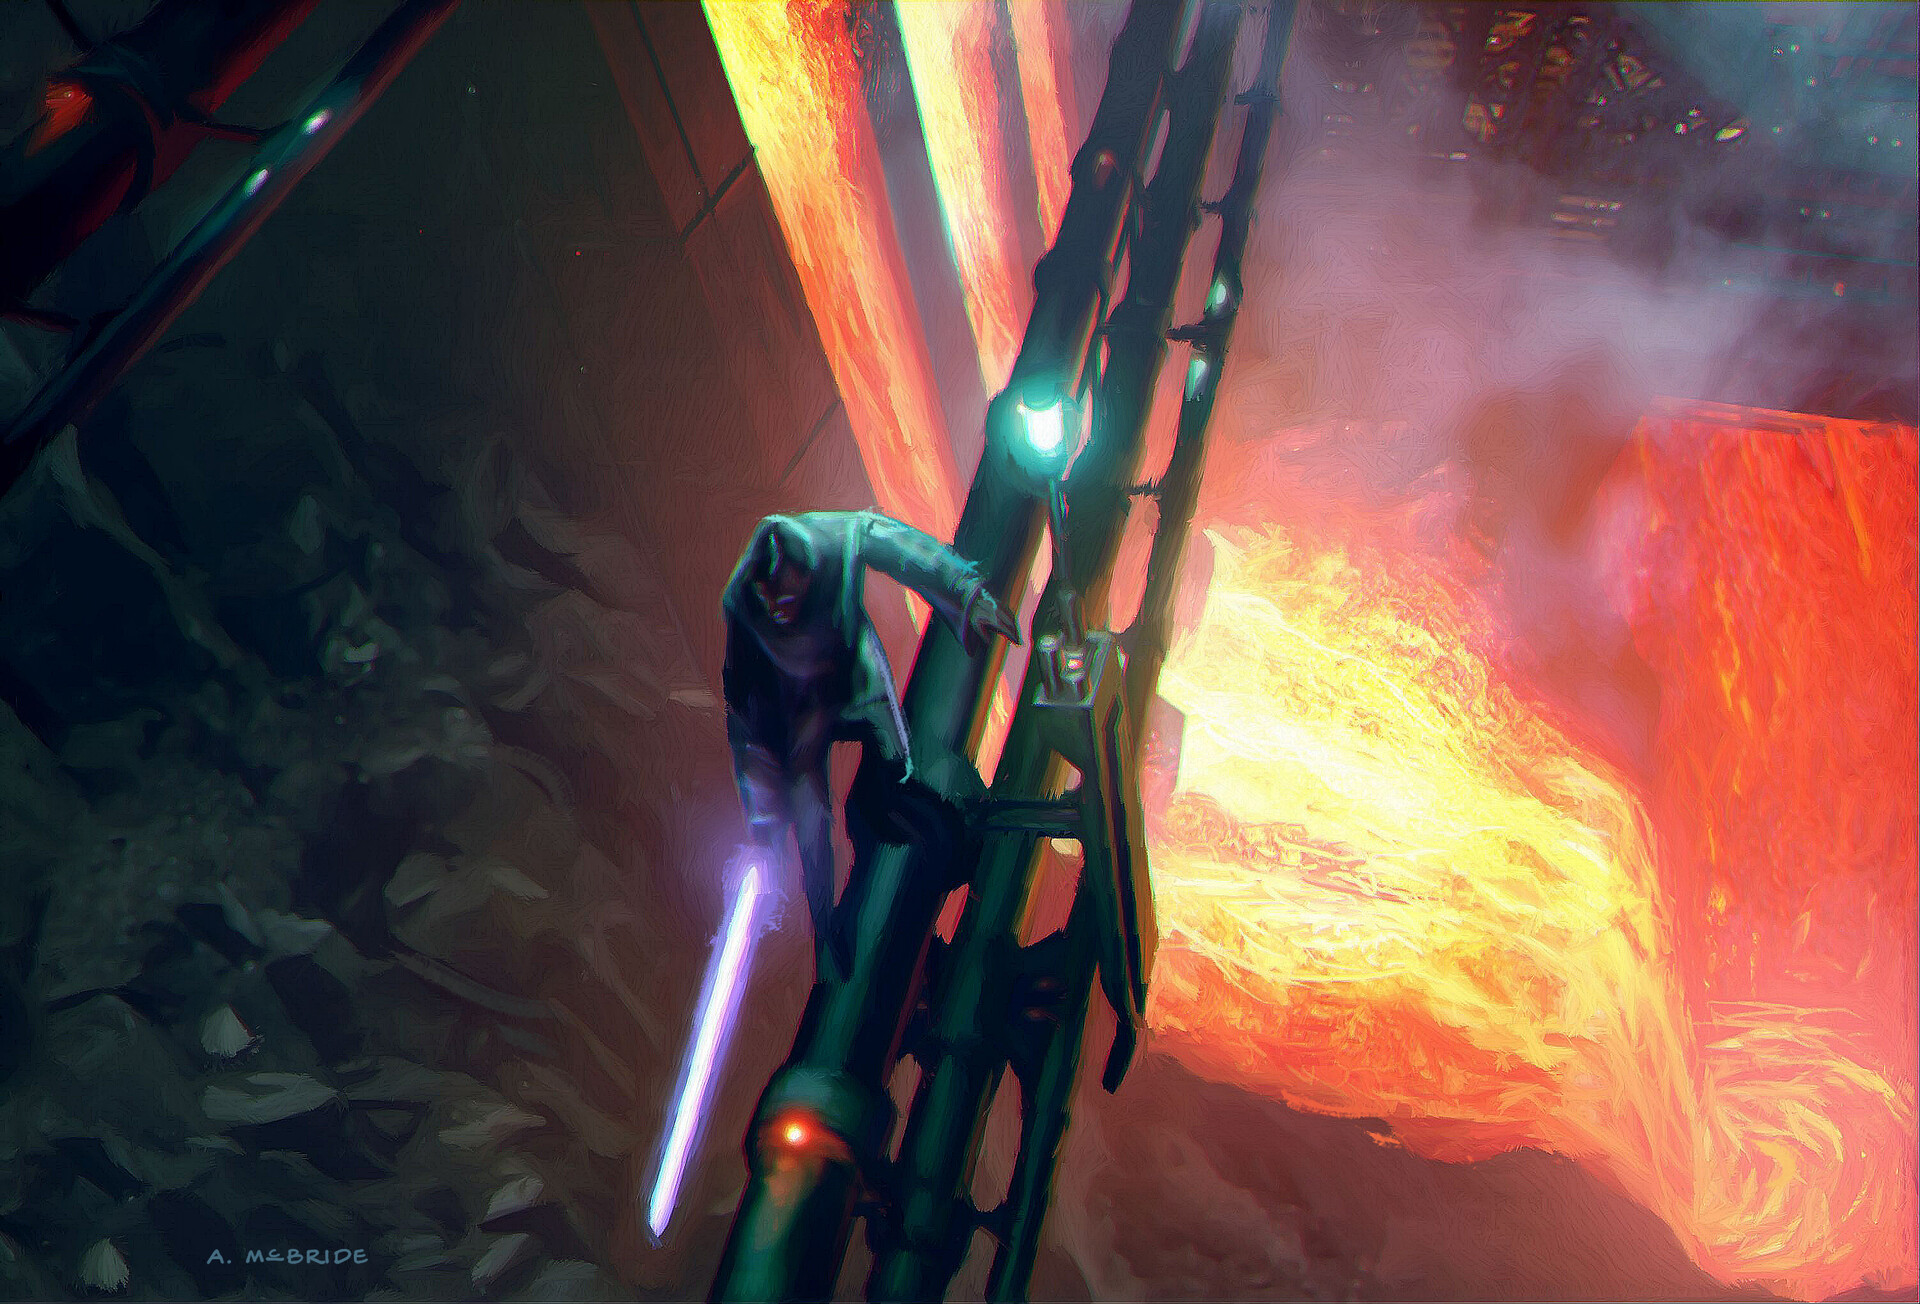 Artstation Star Wars Revenge Of The Sith 2005 Concept Of Obi Wan Dueling Anakin Over Lava Dam Aaron Mcbride